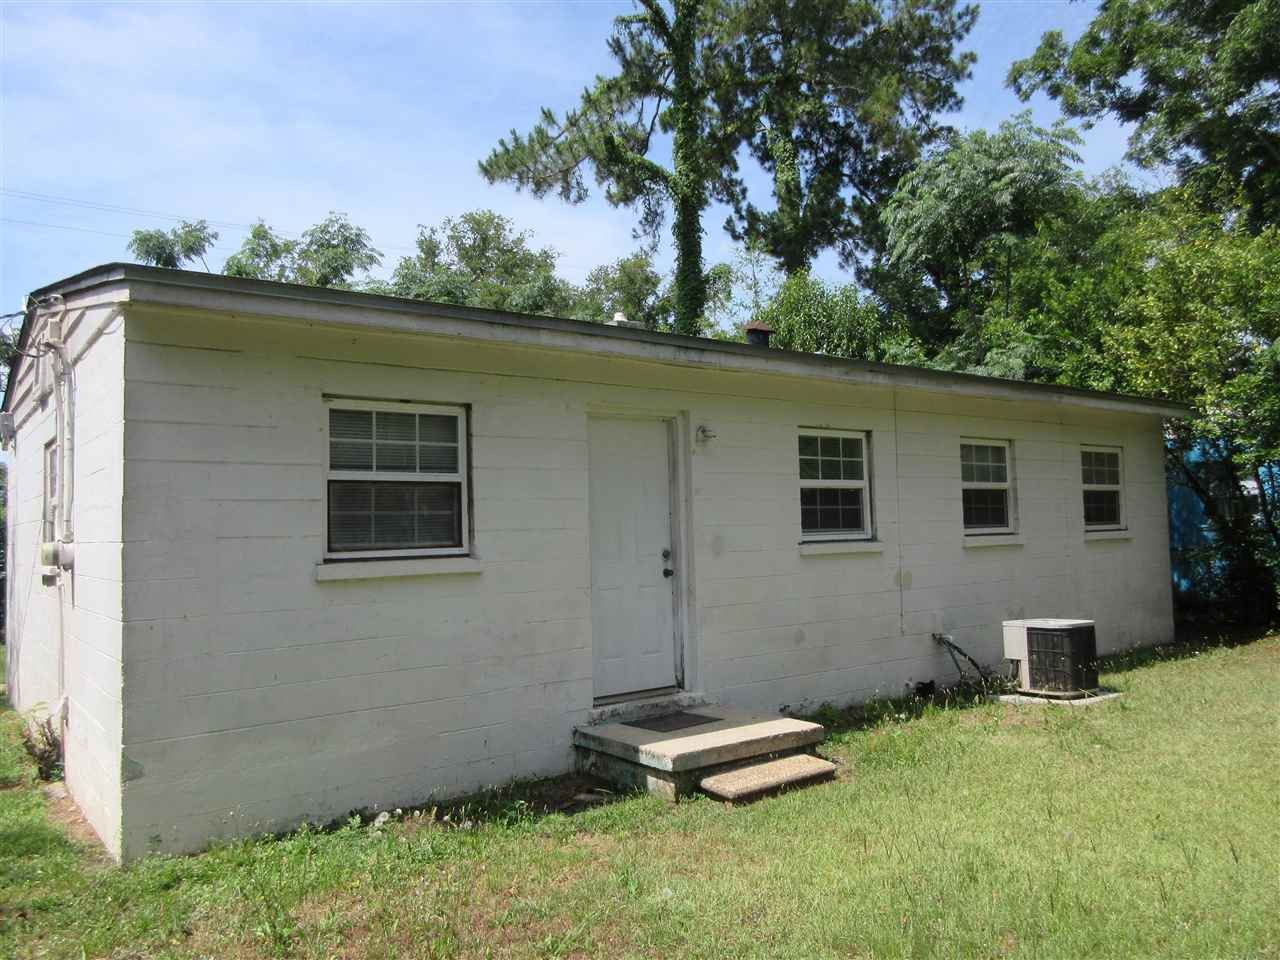 Photo of 504 E Paul Russell Road, TALLAHASSEE, FL 32301 (MLS # 333064)